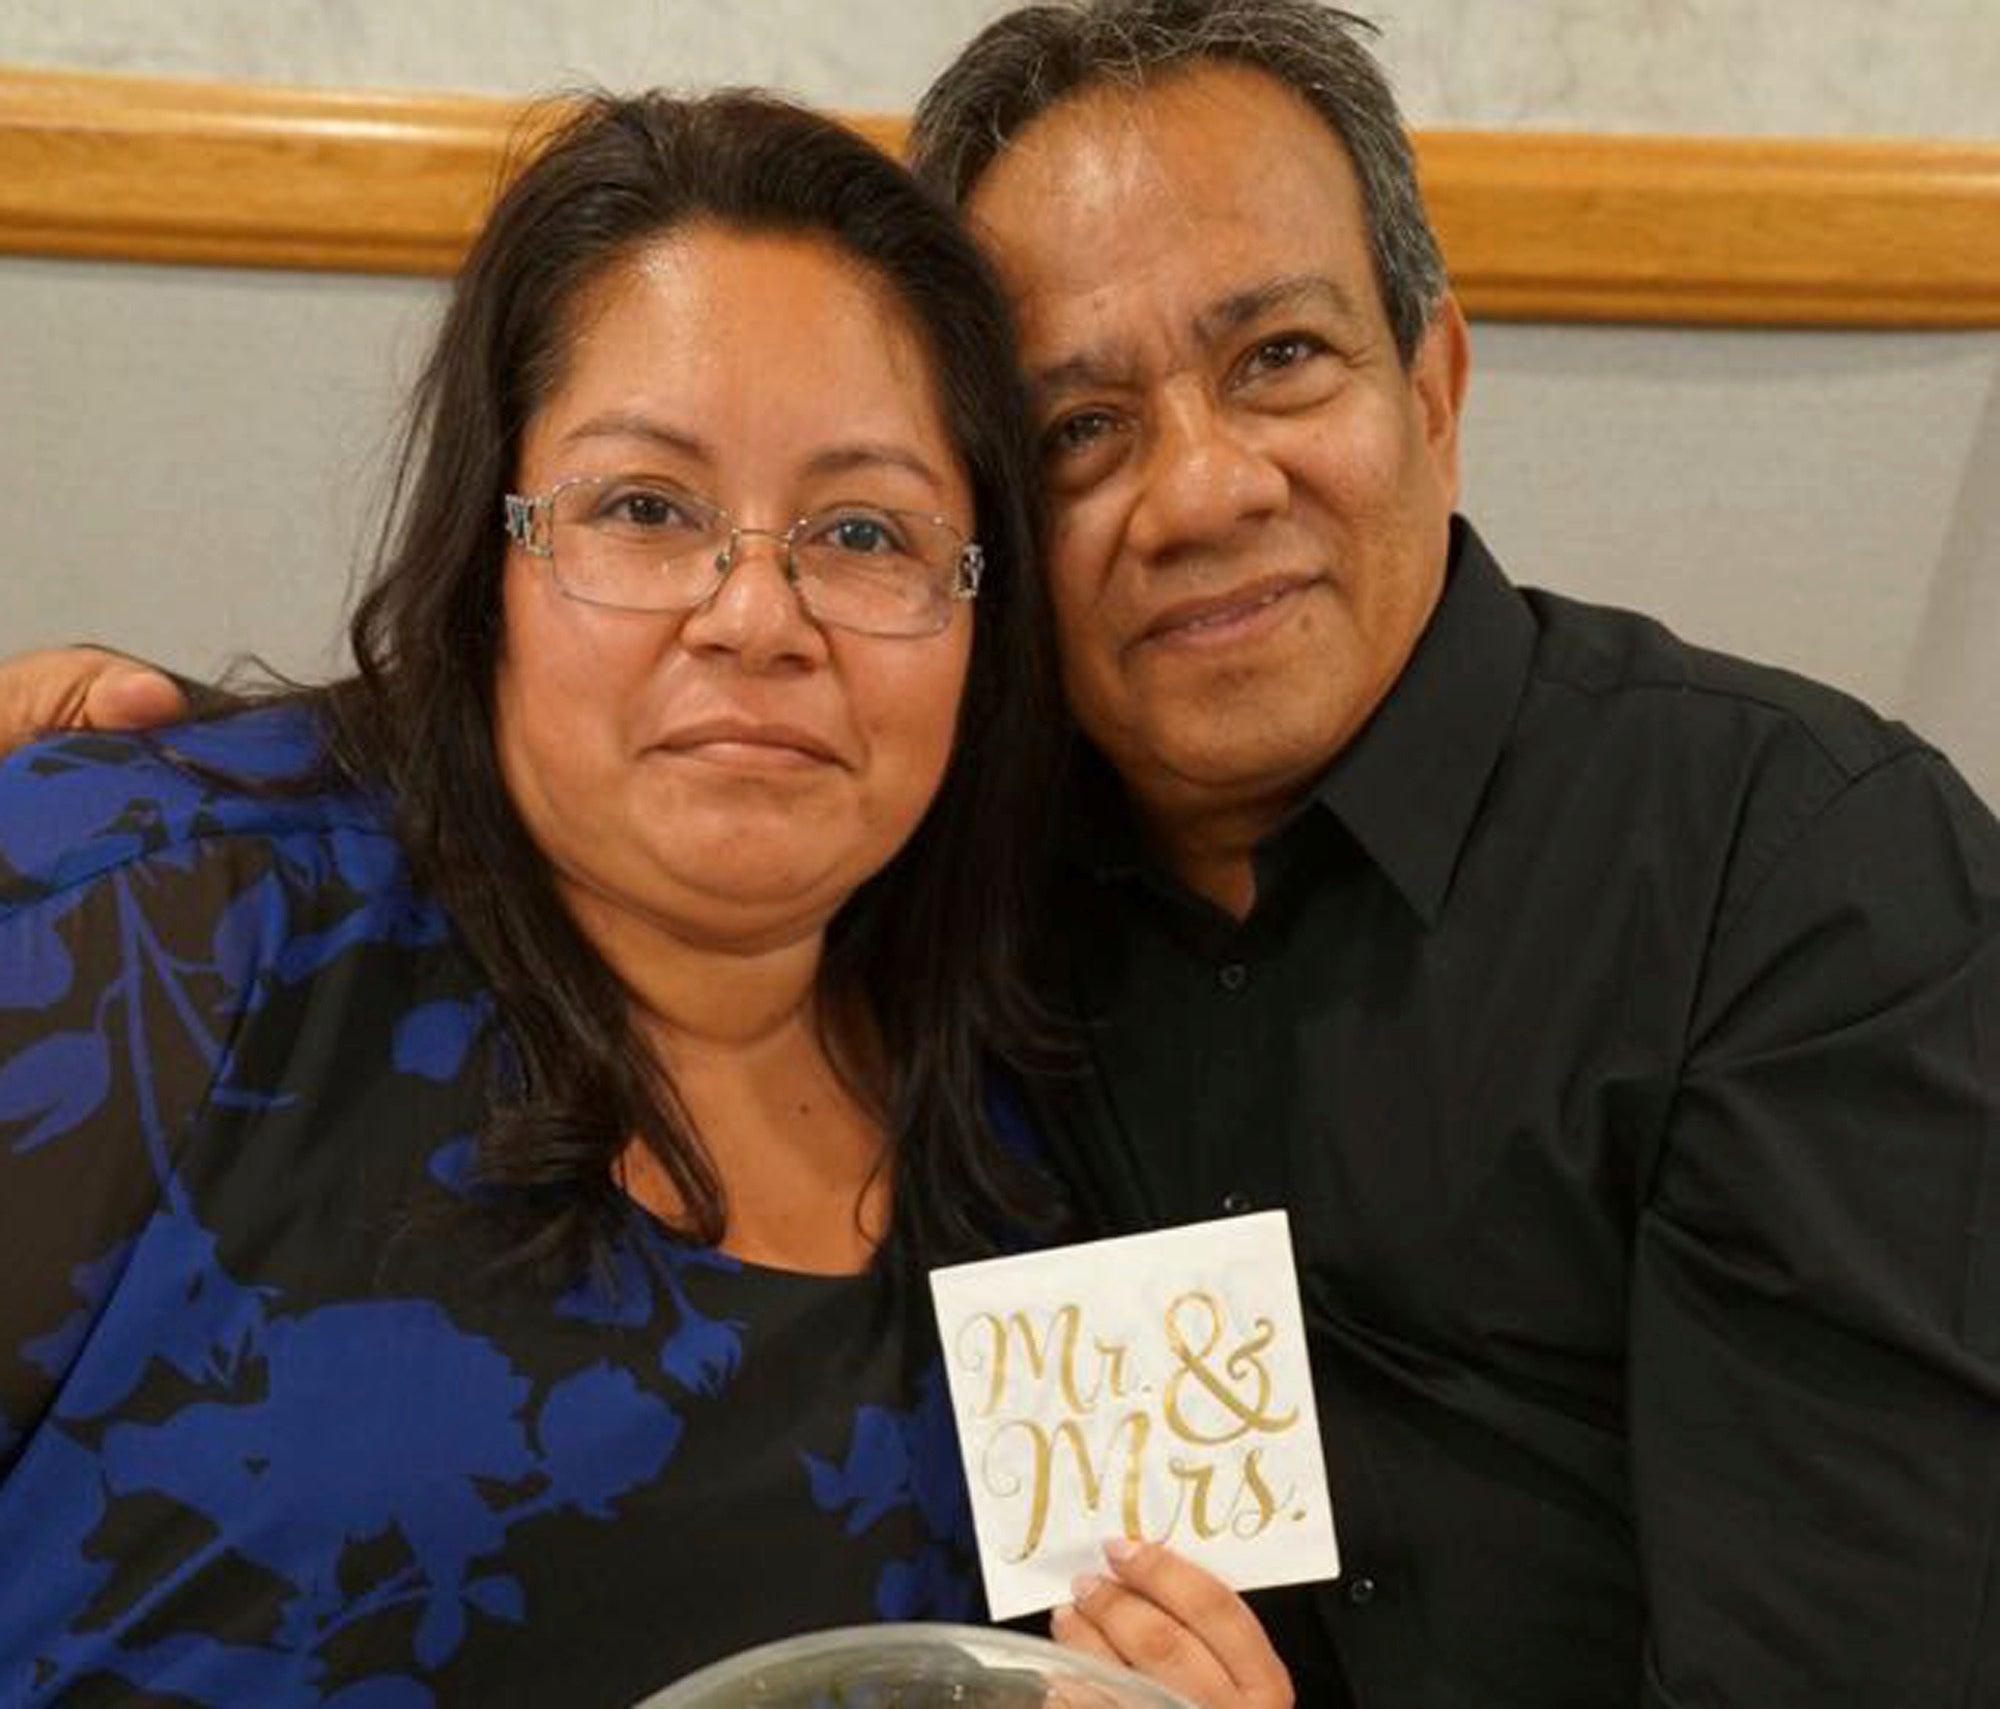 Immigrant couple 'detained by ICE while visiting pregnant daughter on US military base'